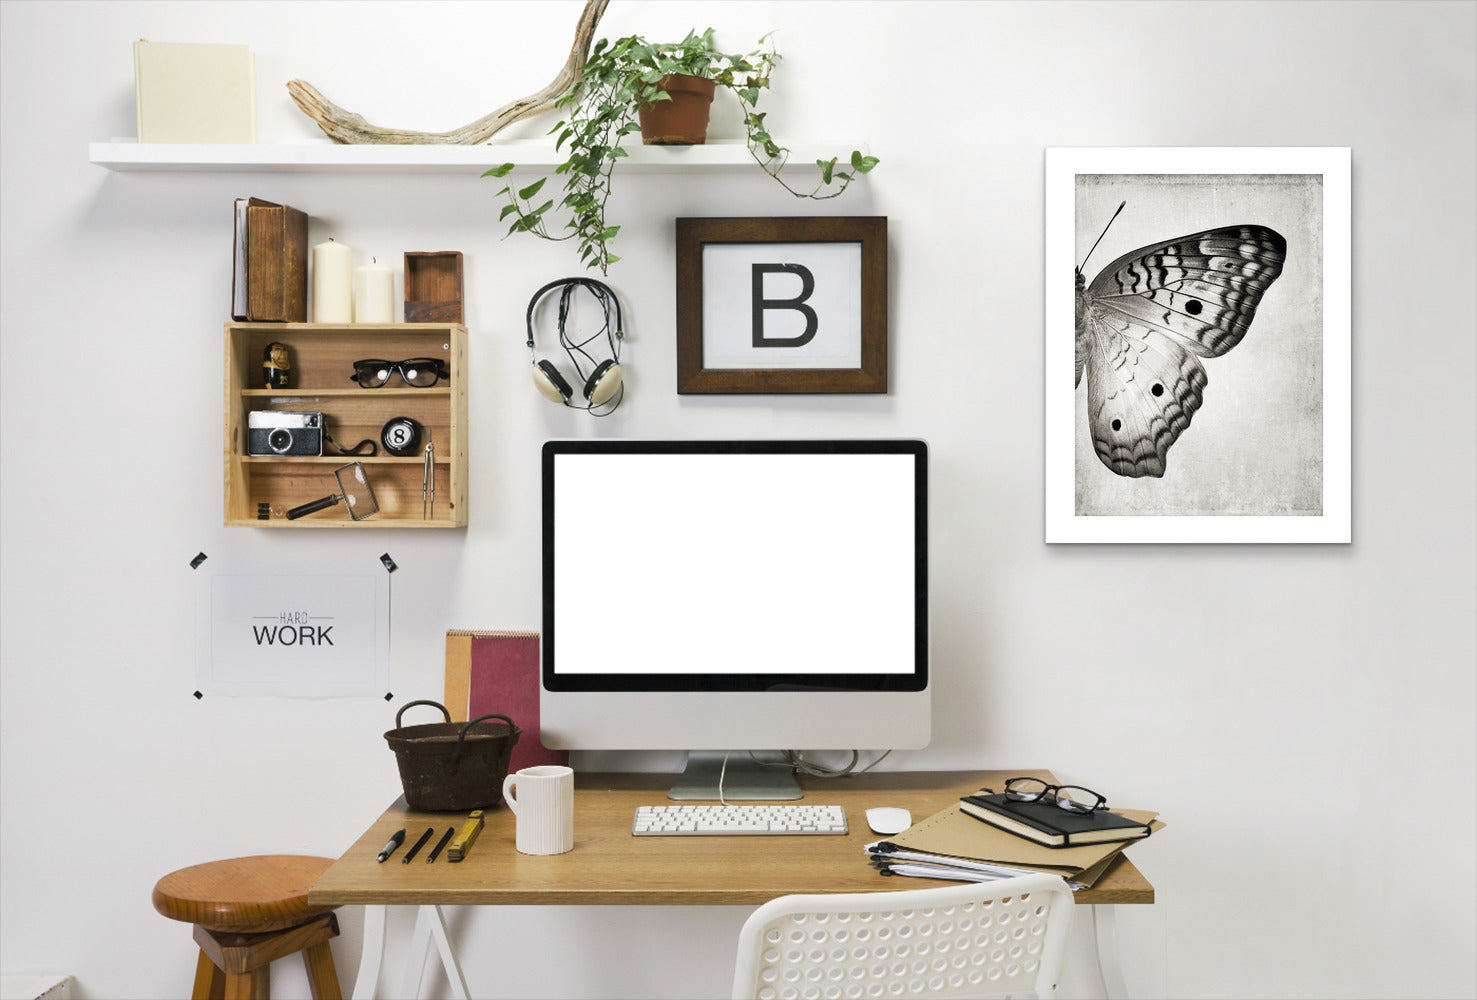 Gray Butterfly Ii By Chaos & Wonder Design - White Framed Print